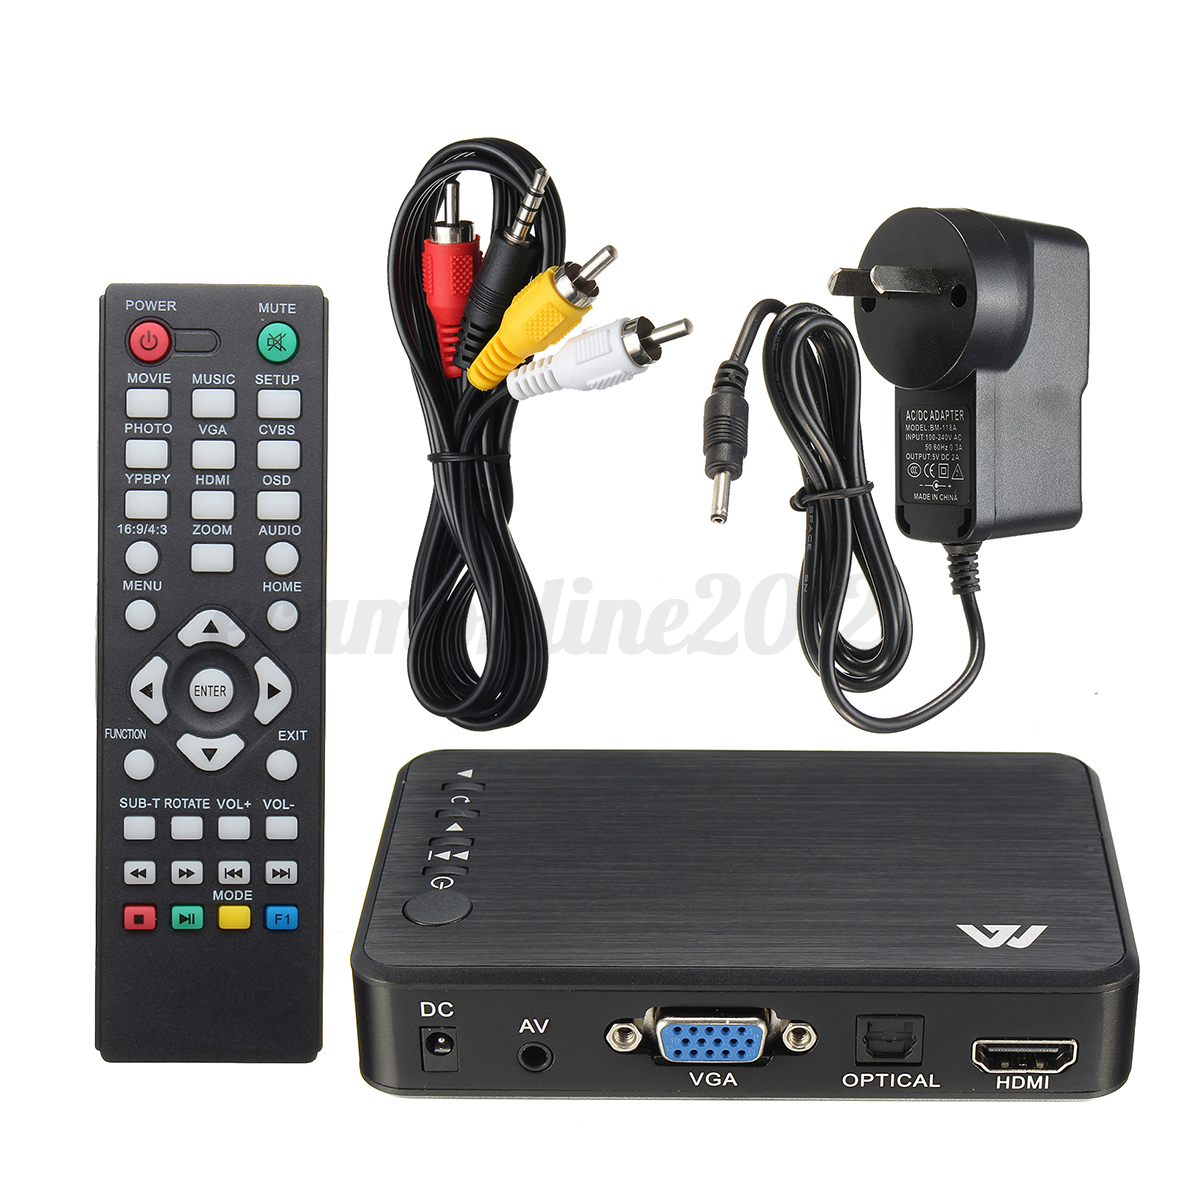 mini full 1080p hd multi media player tv box 3 outputs. Black Bedroom Furniture Sets. Home Design Ideas